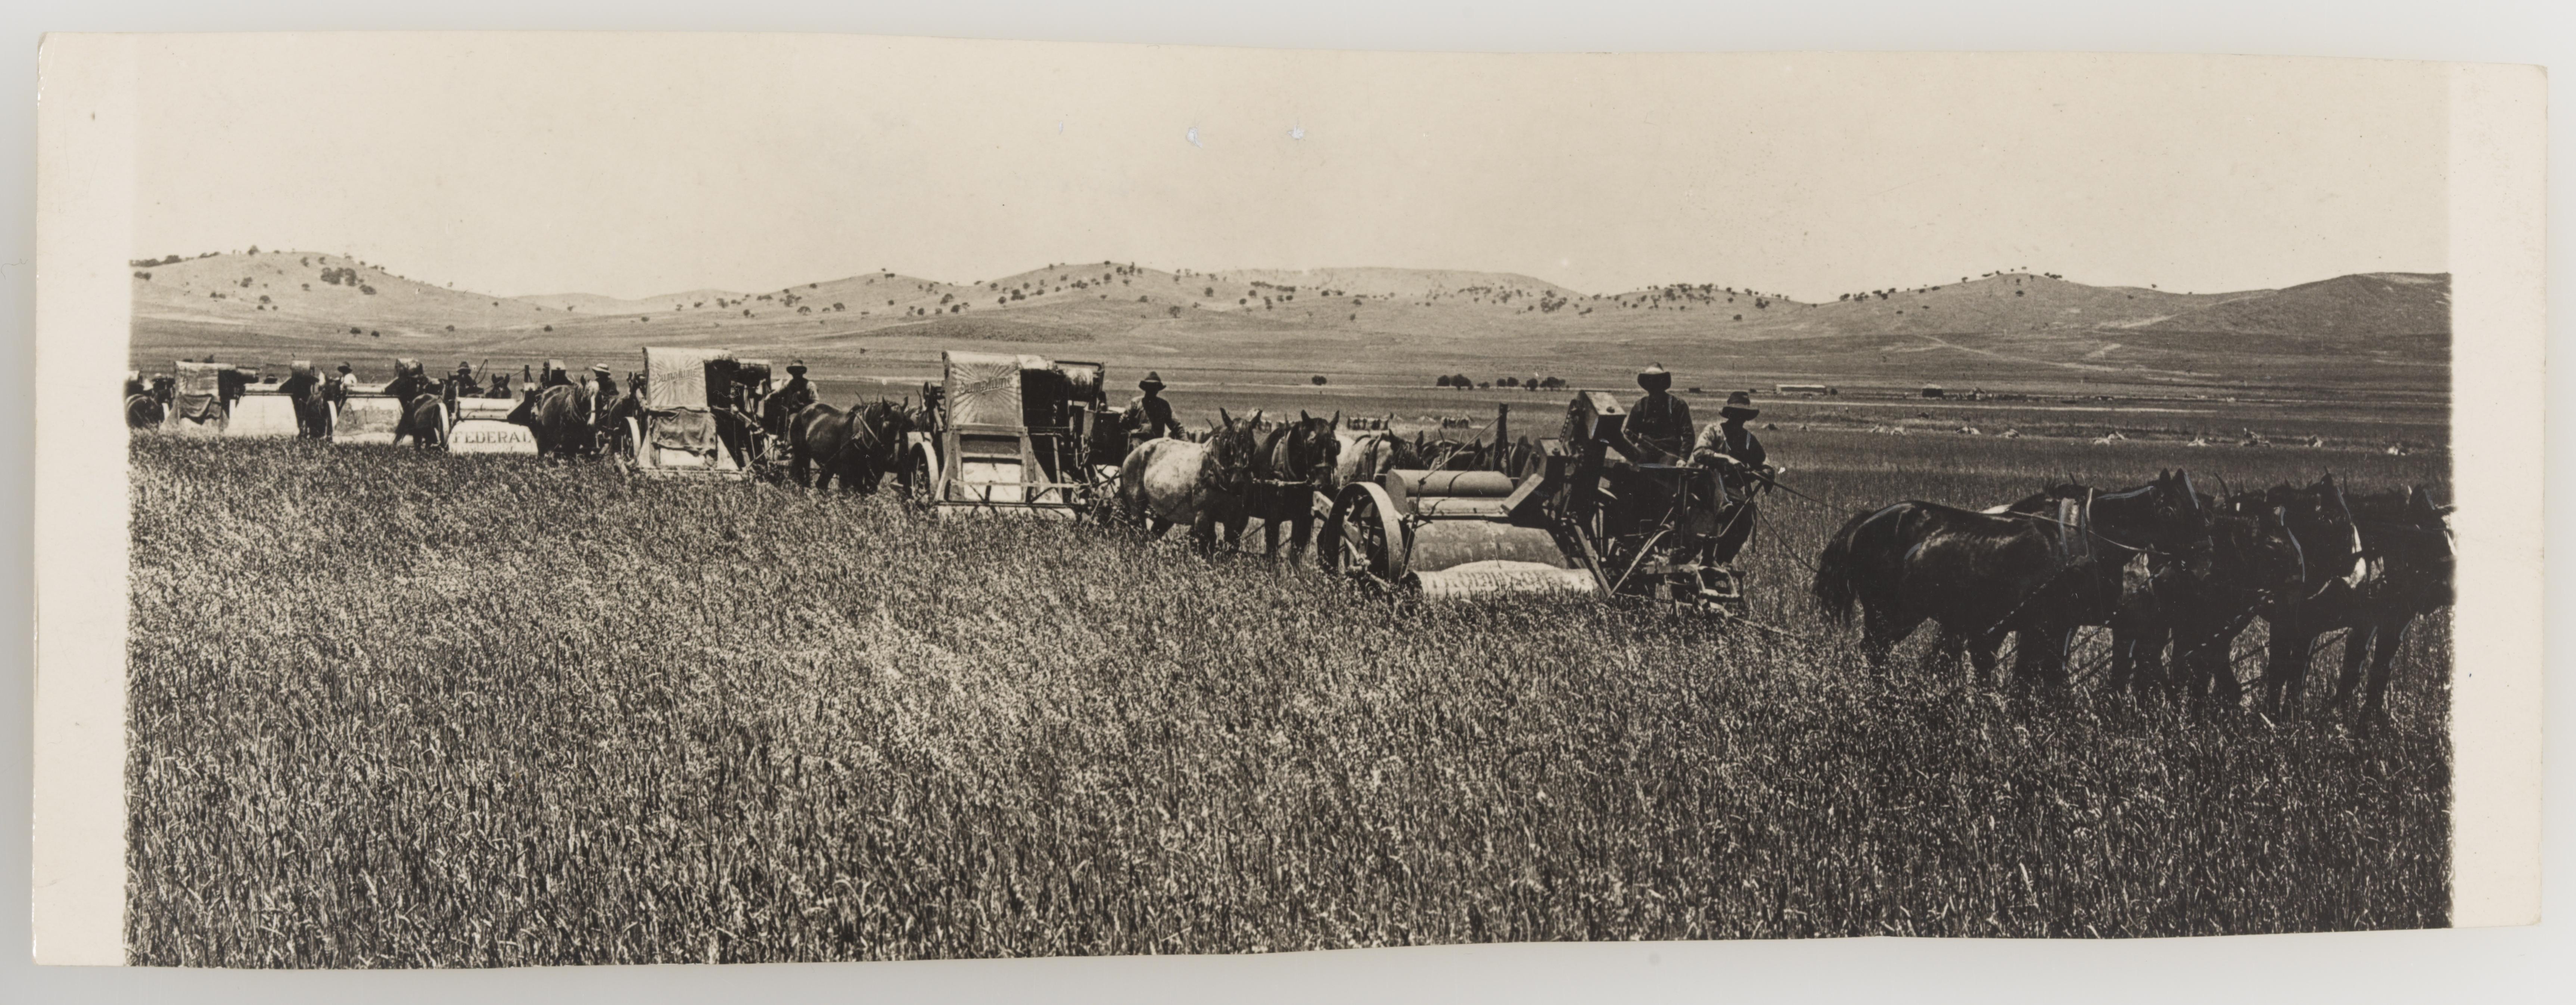 Photographs collected by Rev. James Colwell portraying rural and agricultural scenes and activities - Series 03: Harvesting, 1921-1924